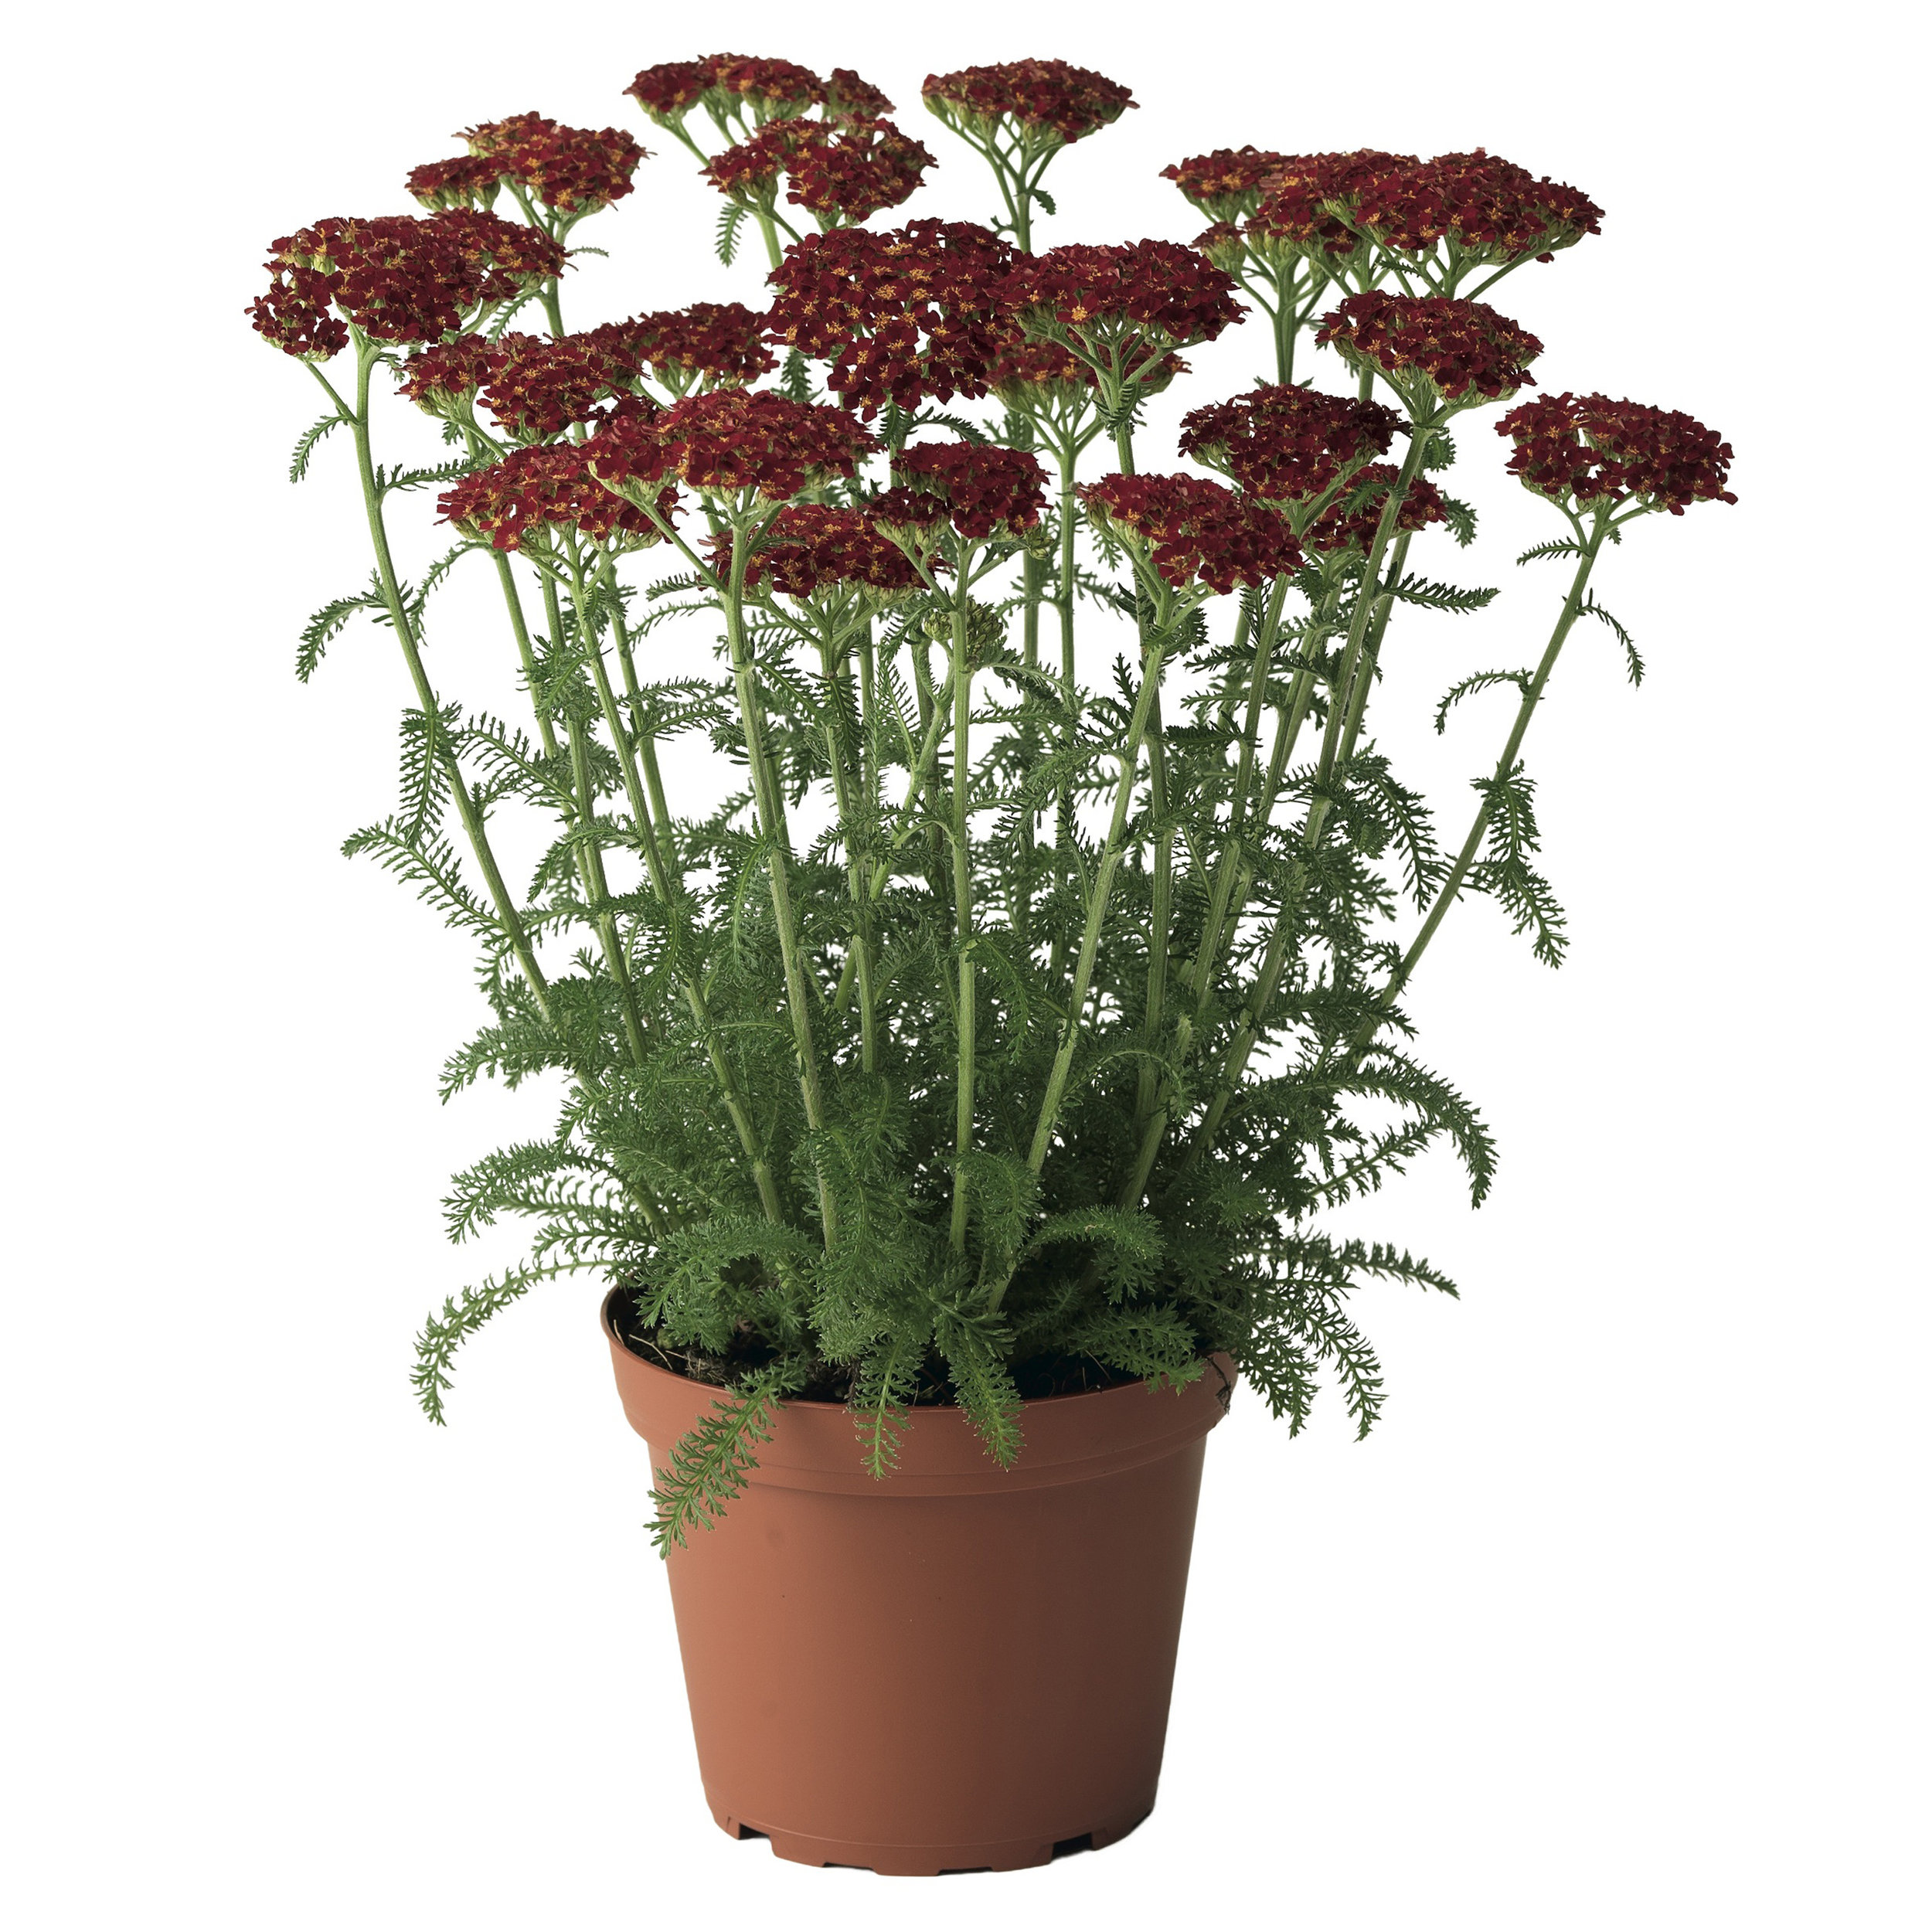 HR_Vegetative_Achillea_Desert_Eve™_Desert_Eve™_Red_70017961_2.jpg